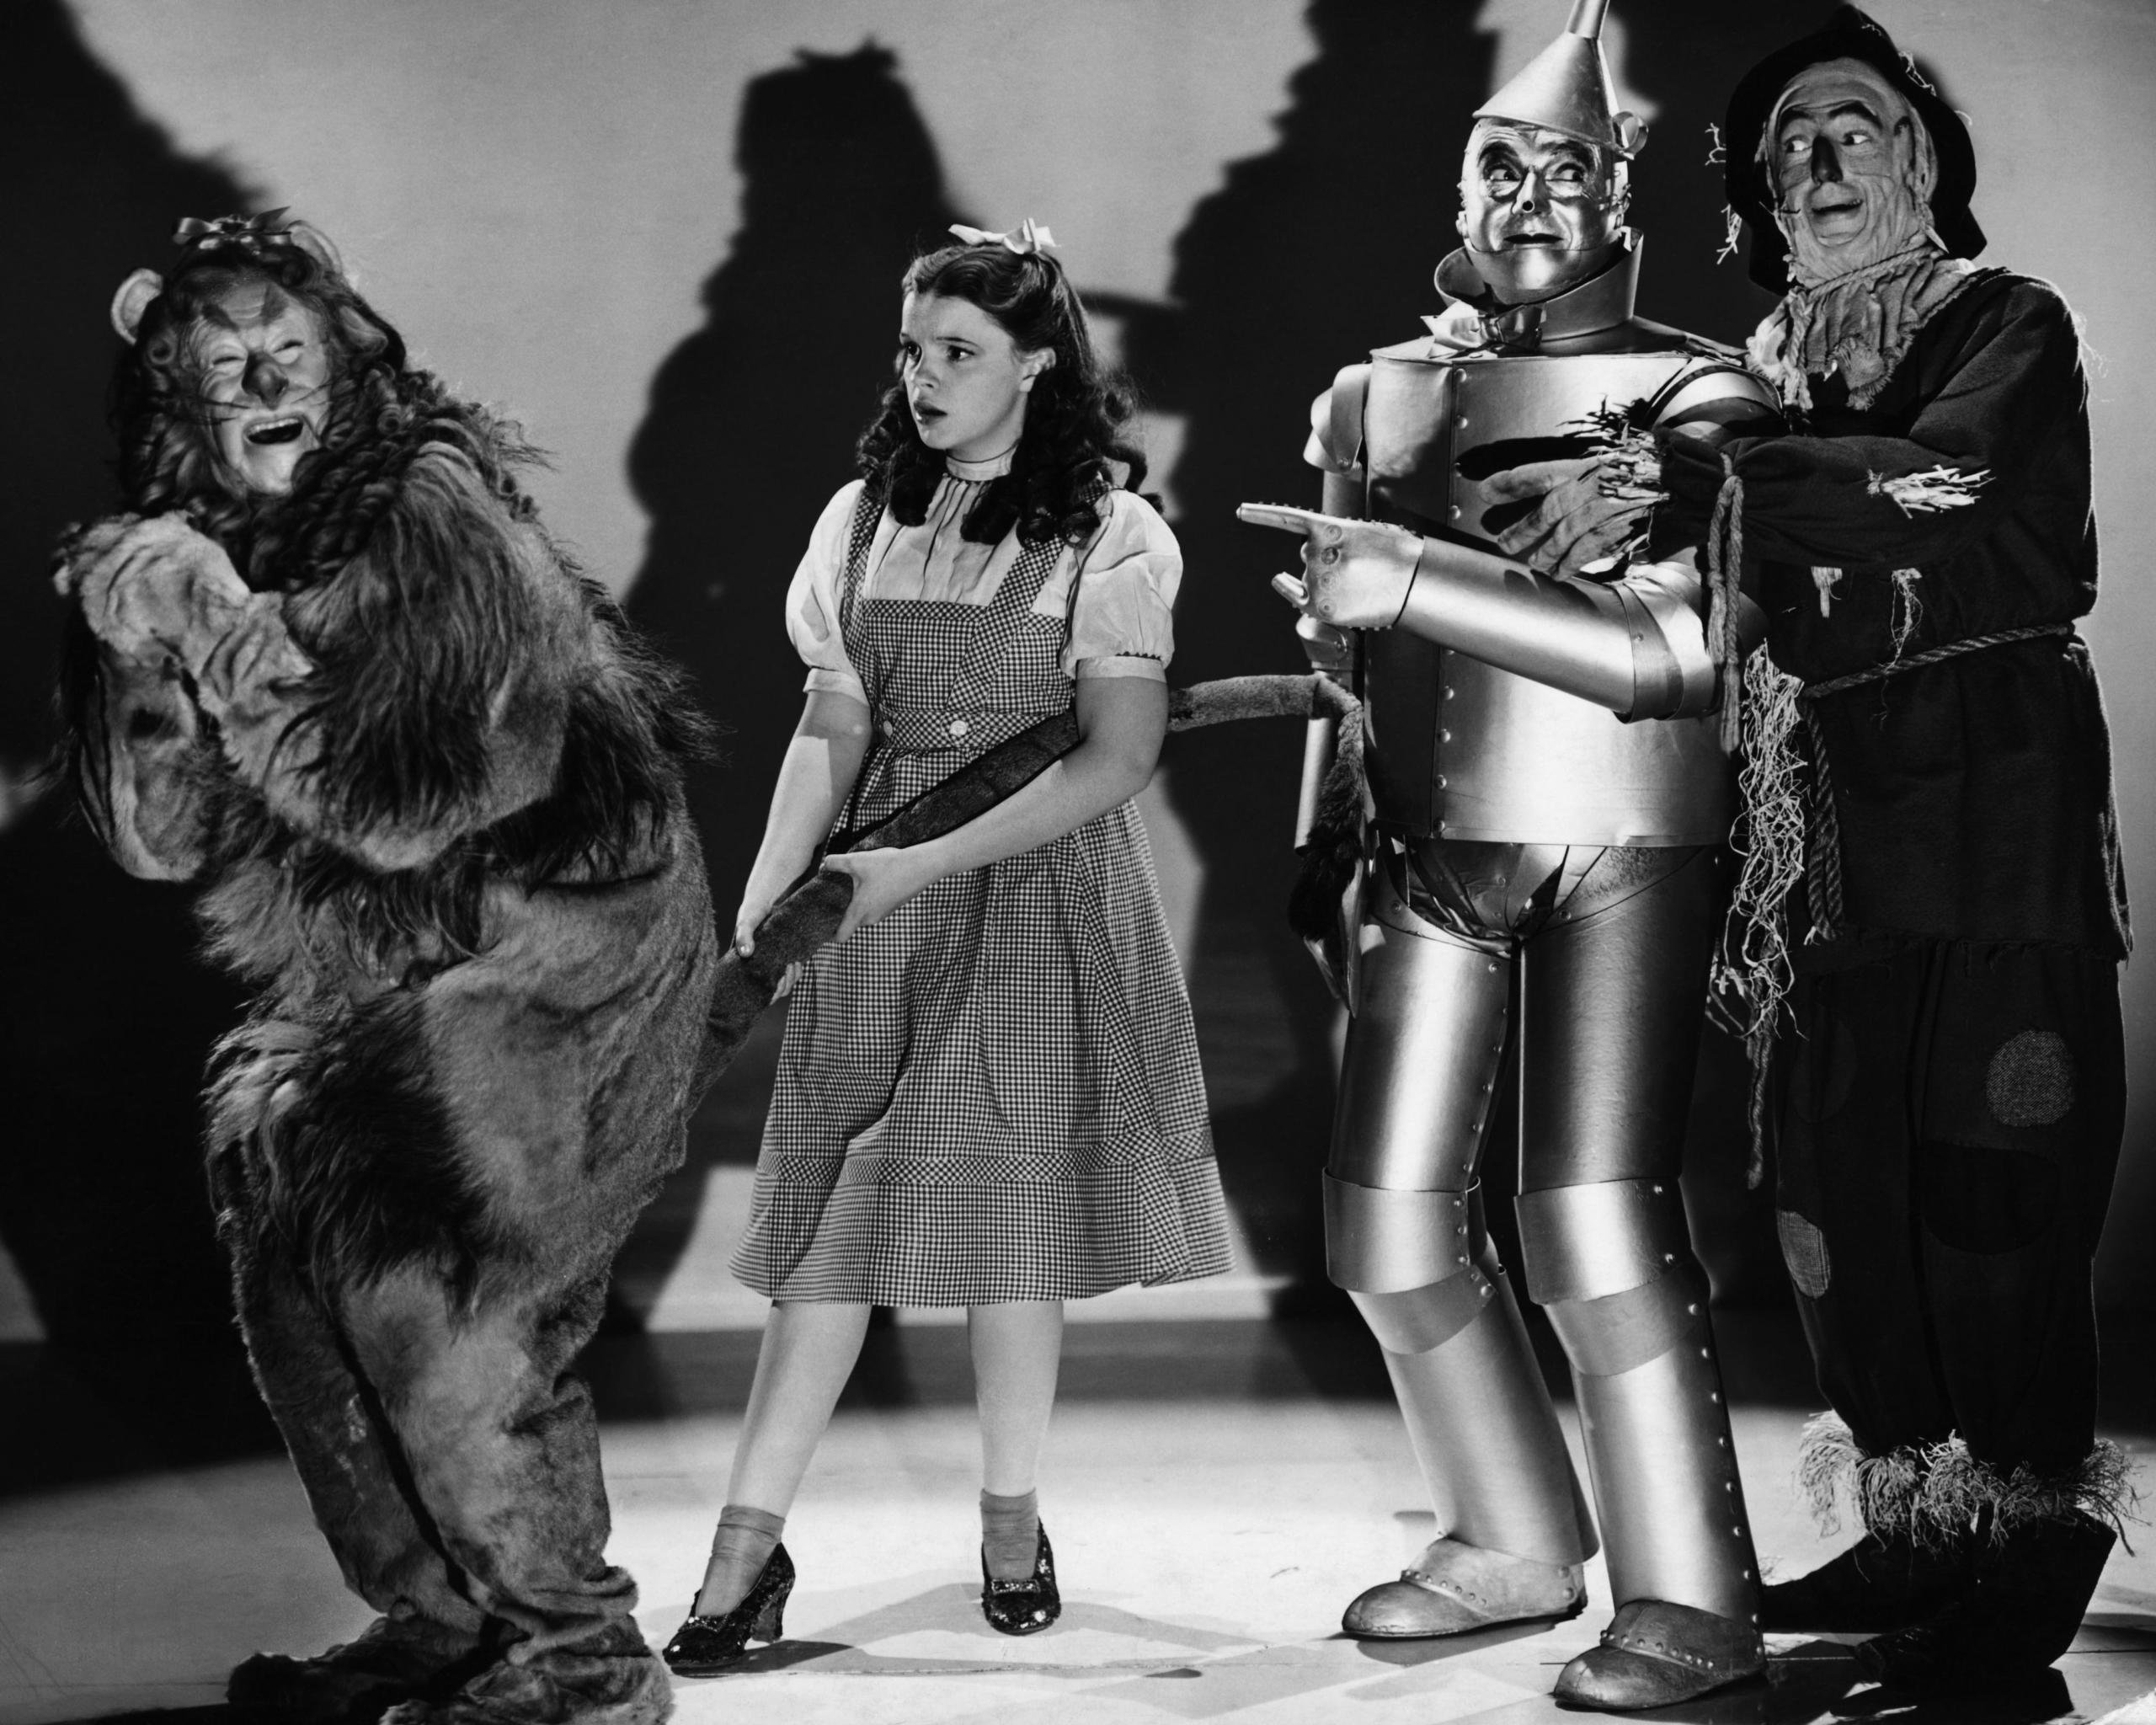 The wizard of oz wallpapers hd for desktop backgrounds - The wizard of oz hd ...